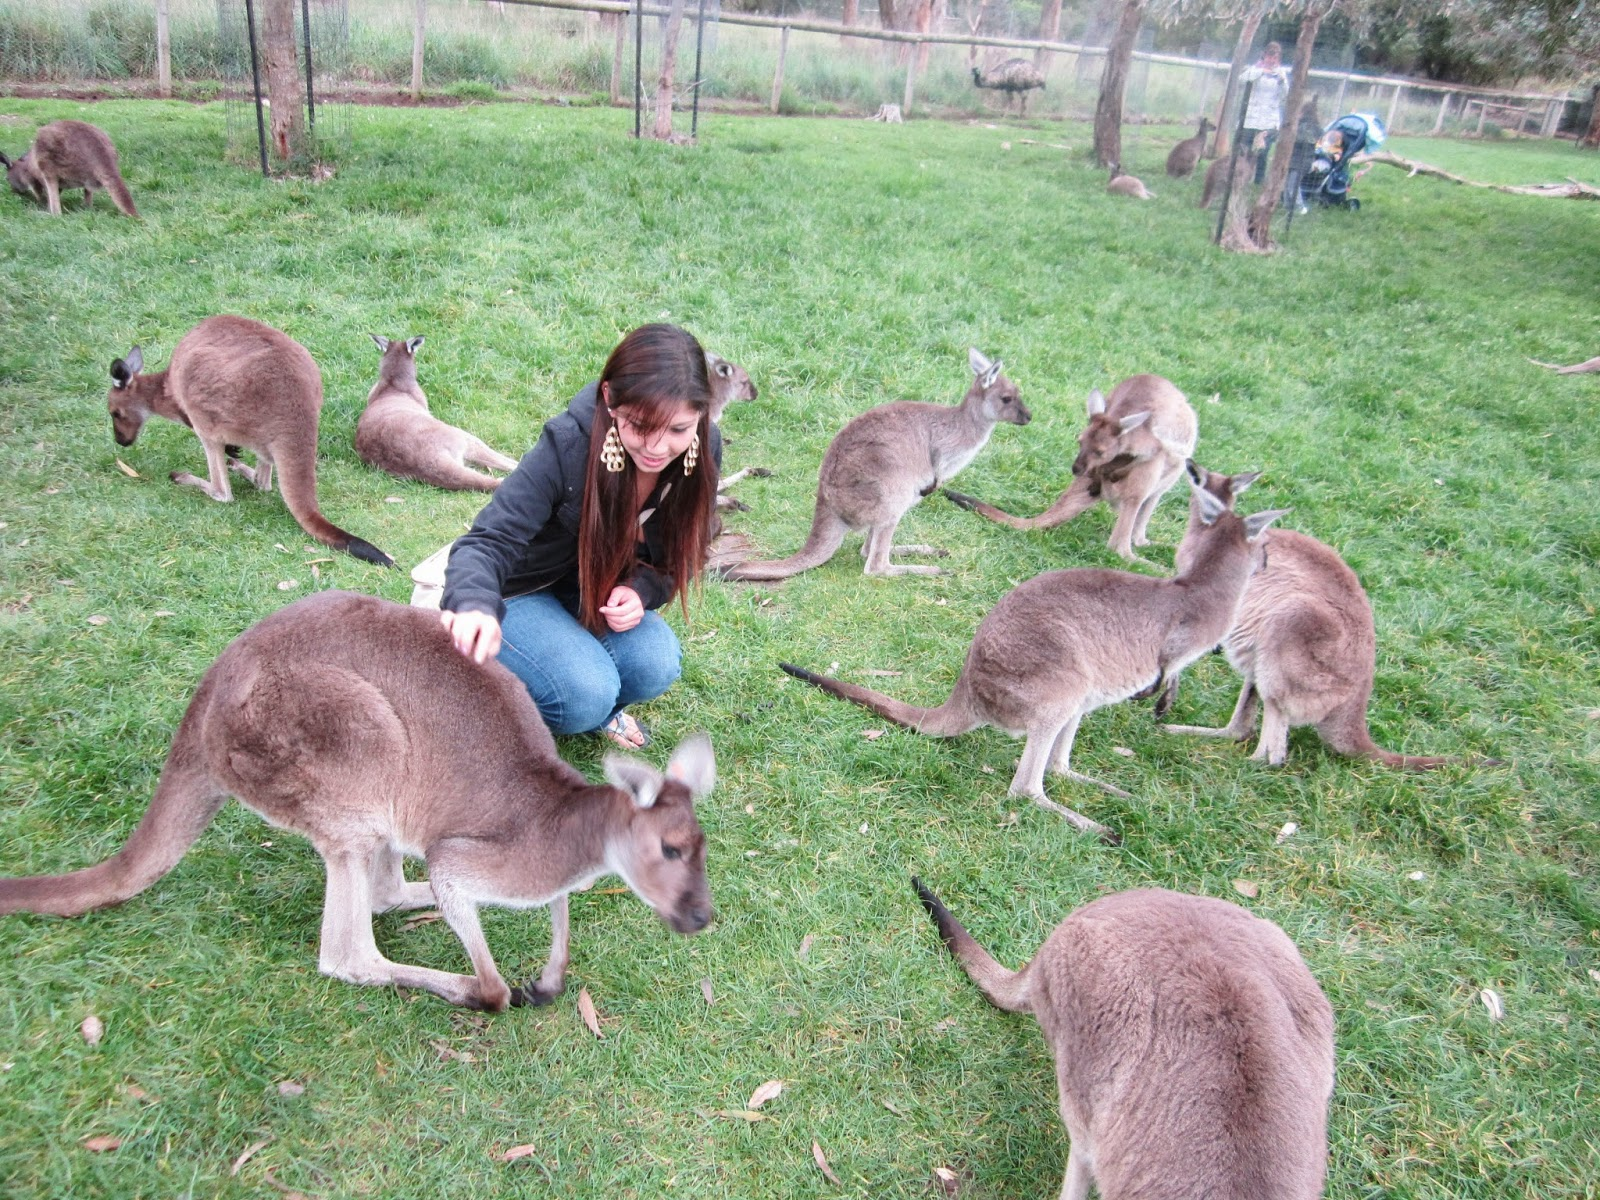 personal with Kangaroos